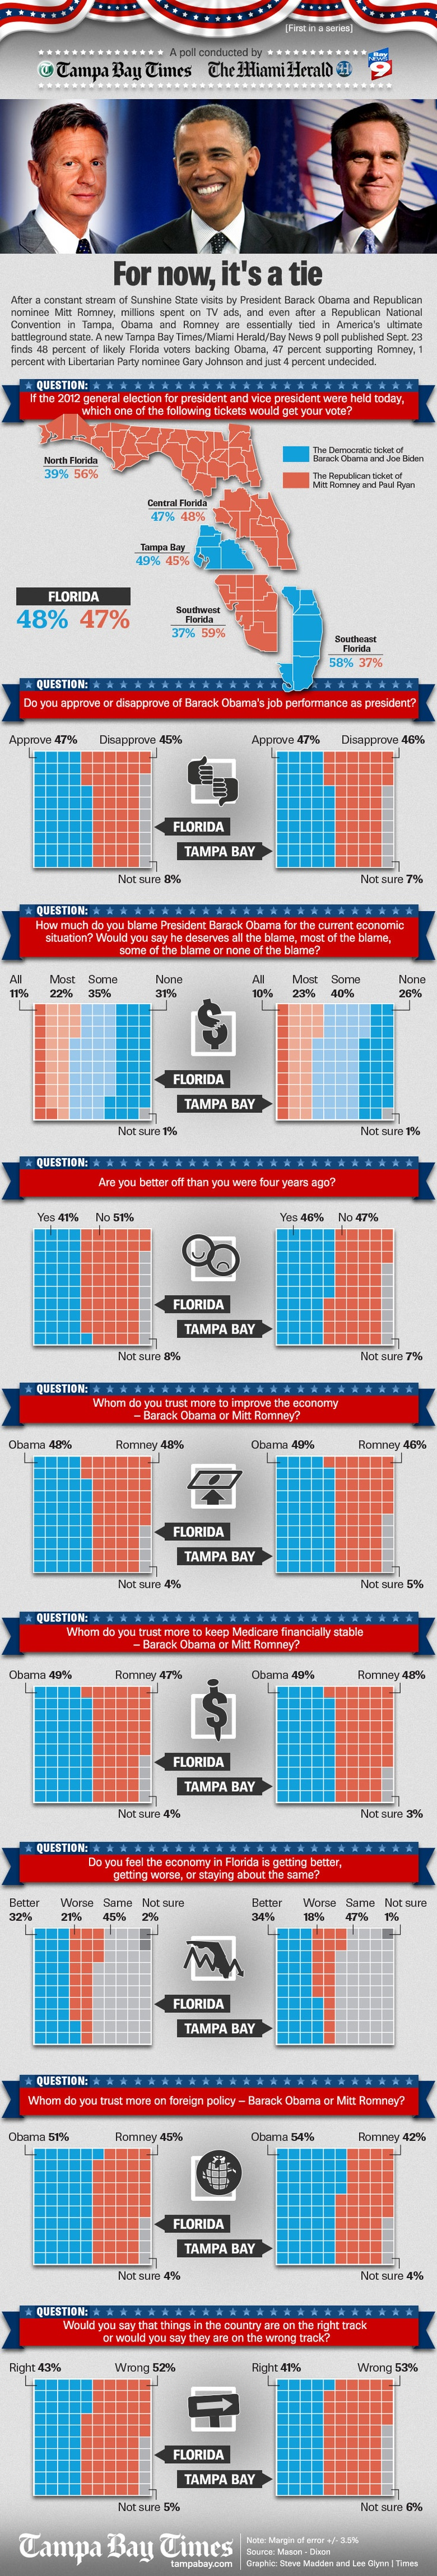 Times, Herald, Bay News 9 poll on presidential election